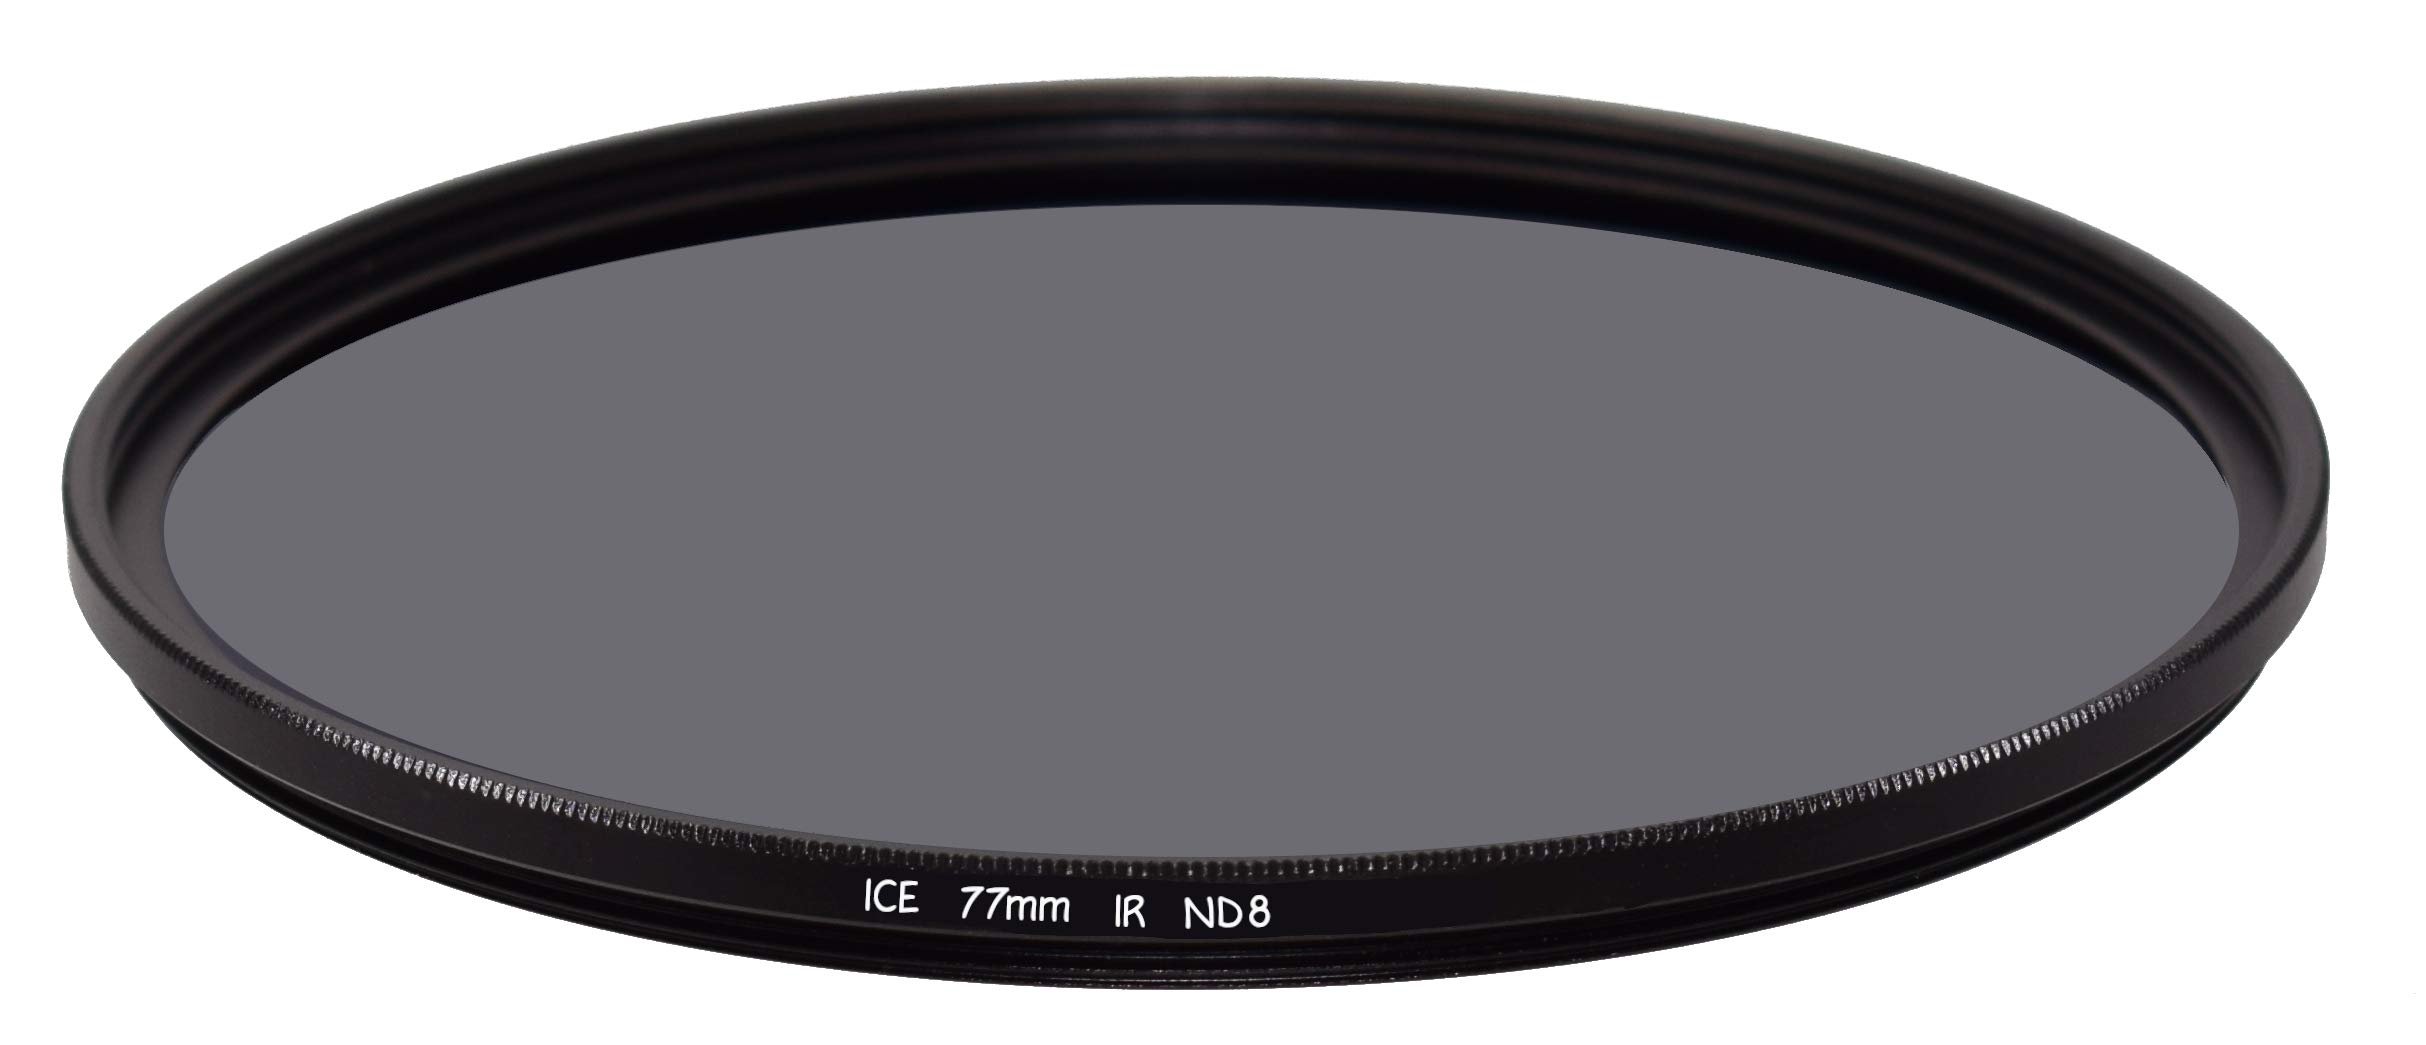 ICE 77mm IR Cut / ND8 MC Filter Neutral Density ND 8 3 Stop Optical Glass 77 by Unknown